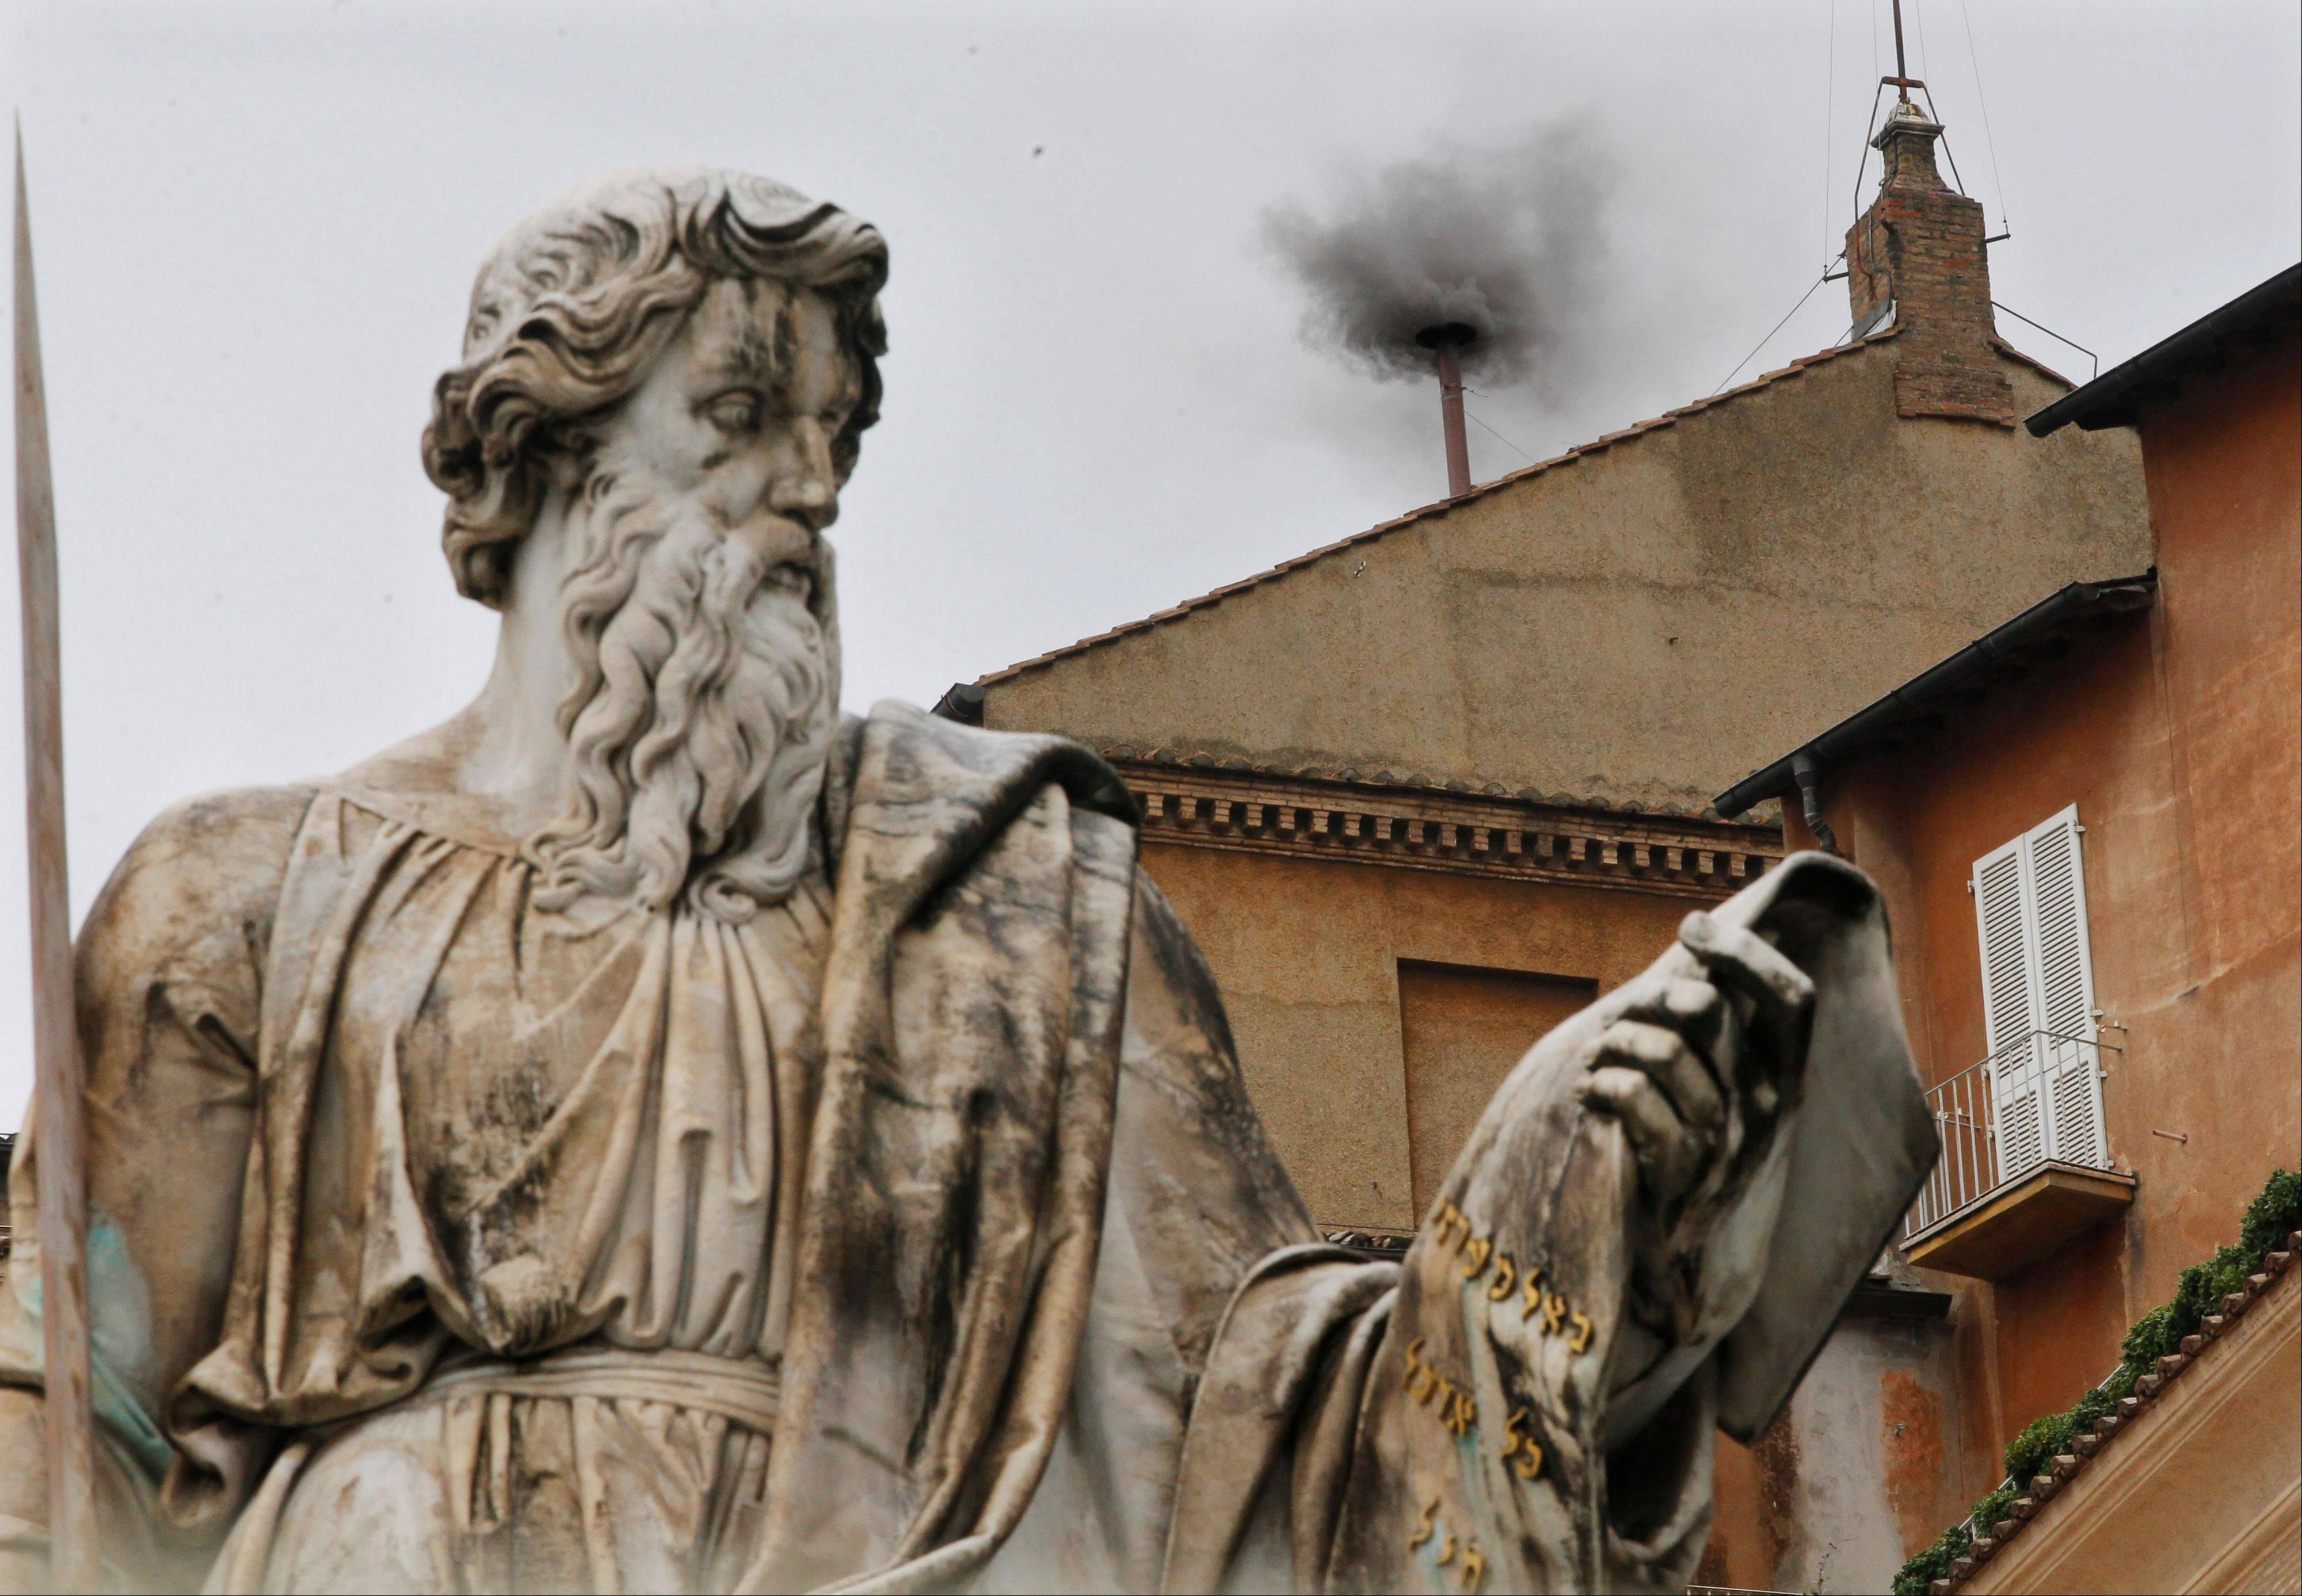 Black smoke from Sistine Chapel: No pope yet